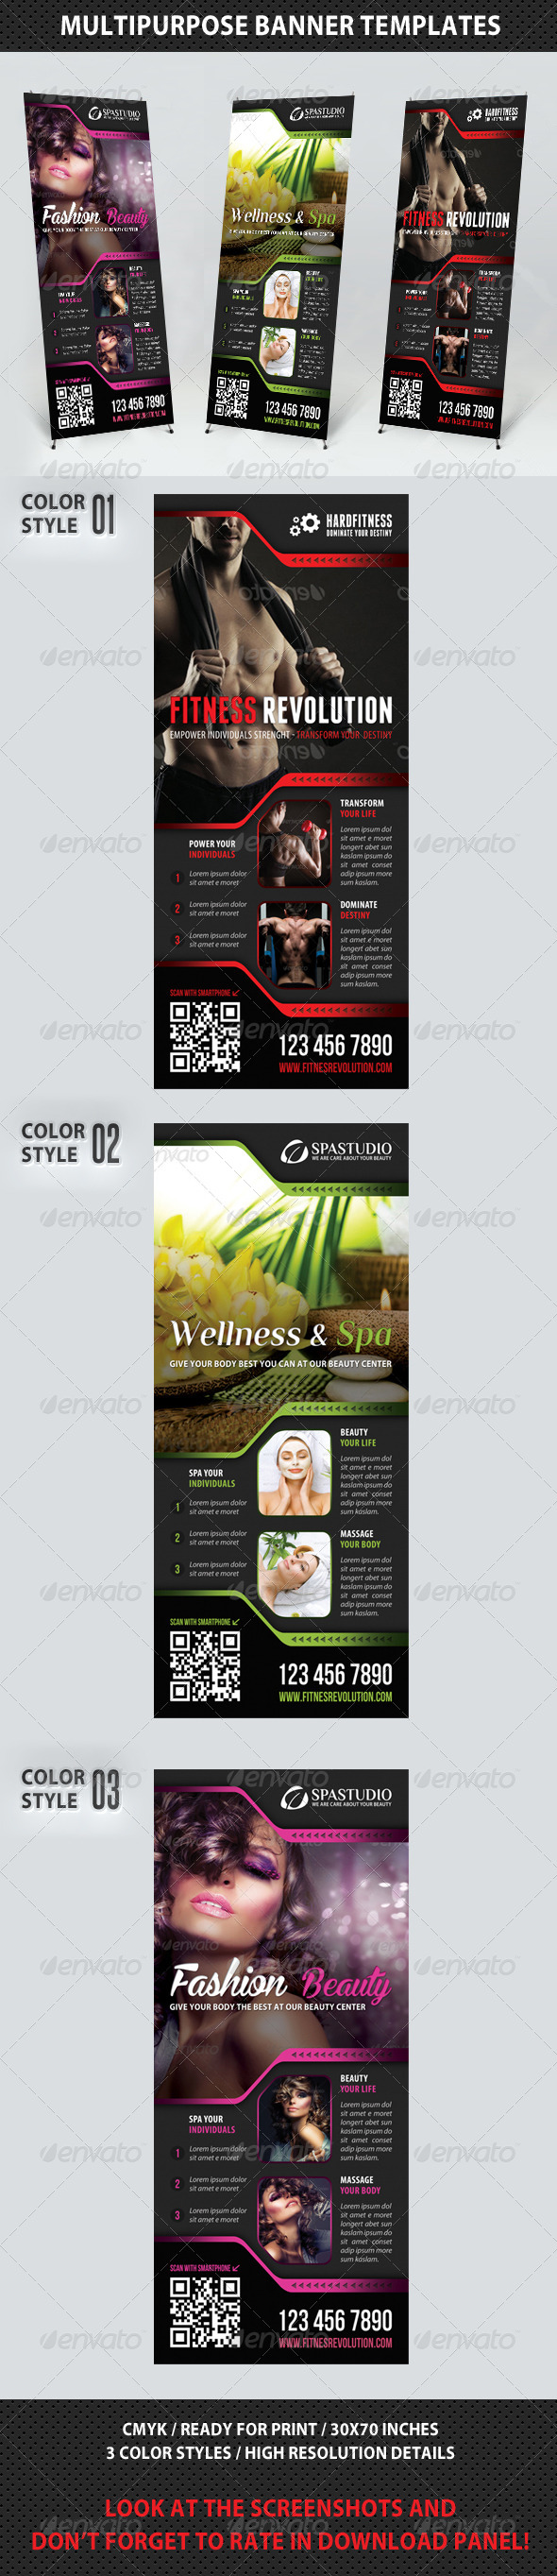 GraphicRiver Multipurpose Banner Template V01 7600708